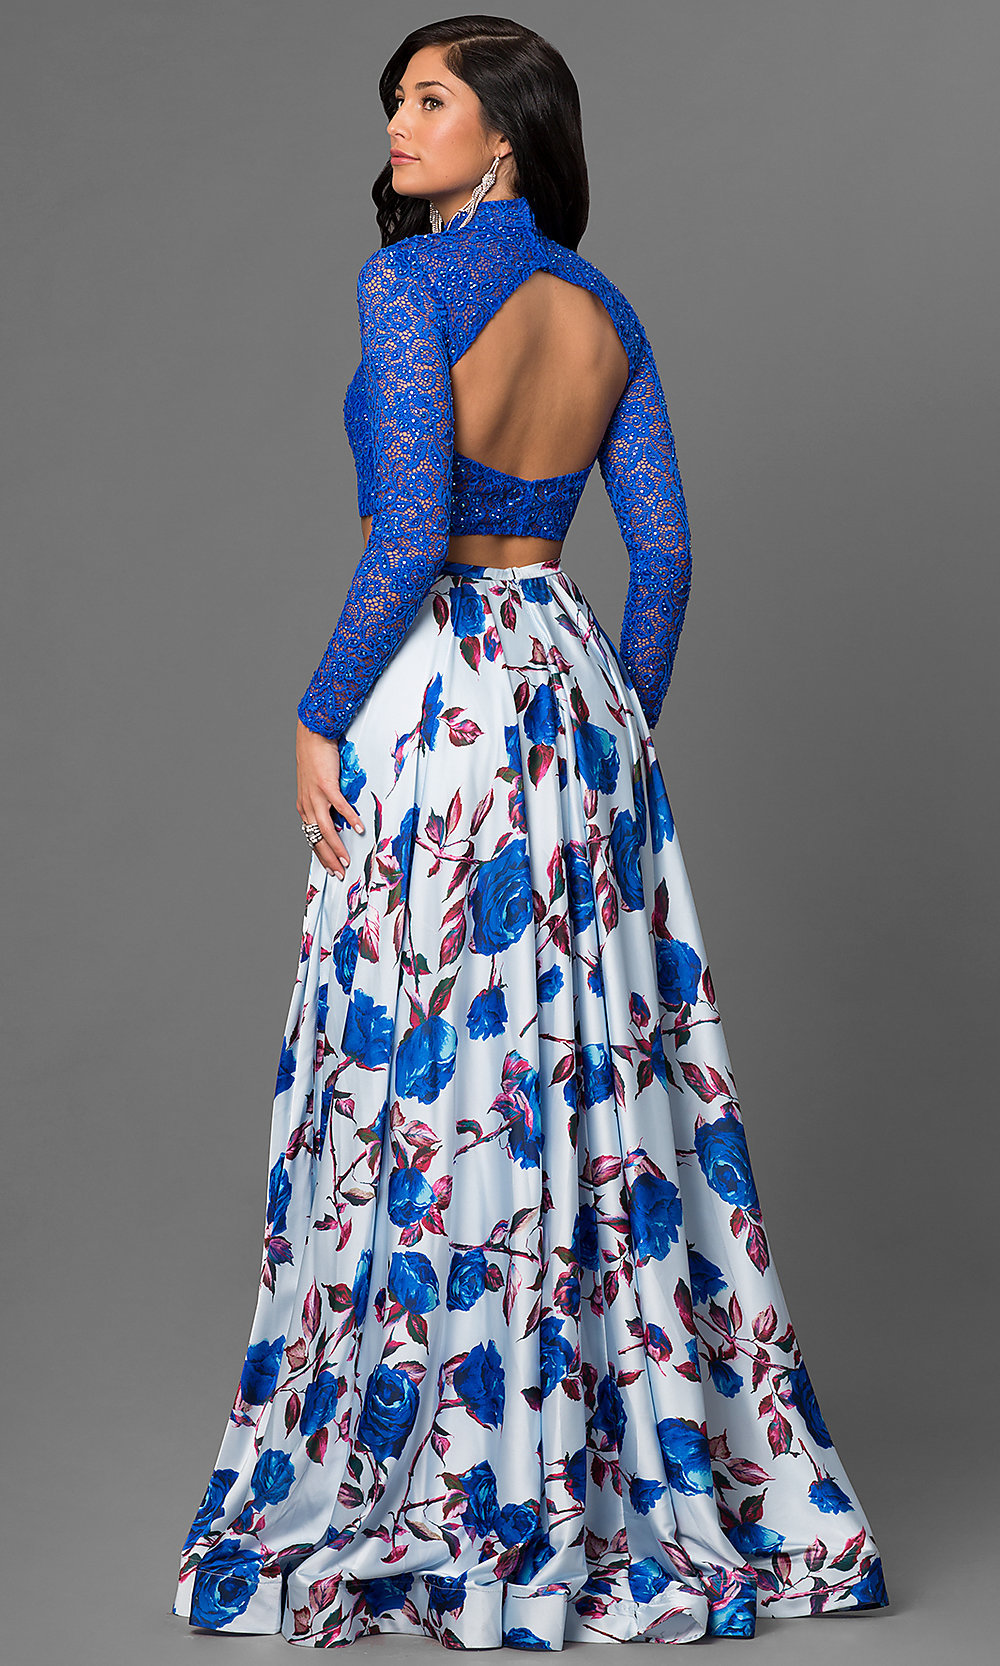 Celebrity prom dresses sexy evening gowns promgirl lf 24507 hover to zoom izmirmasajfo Image collections